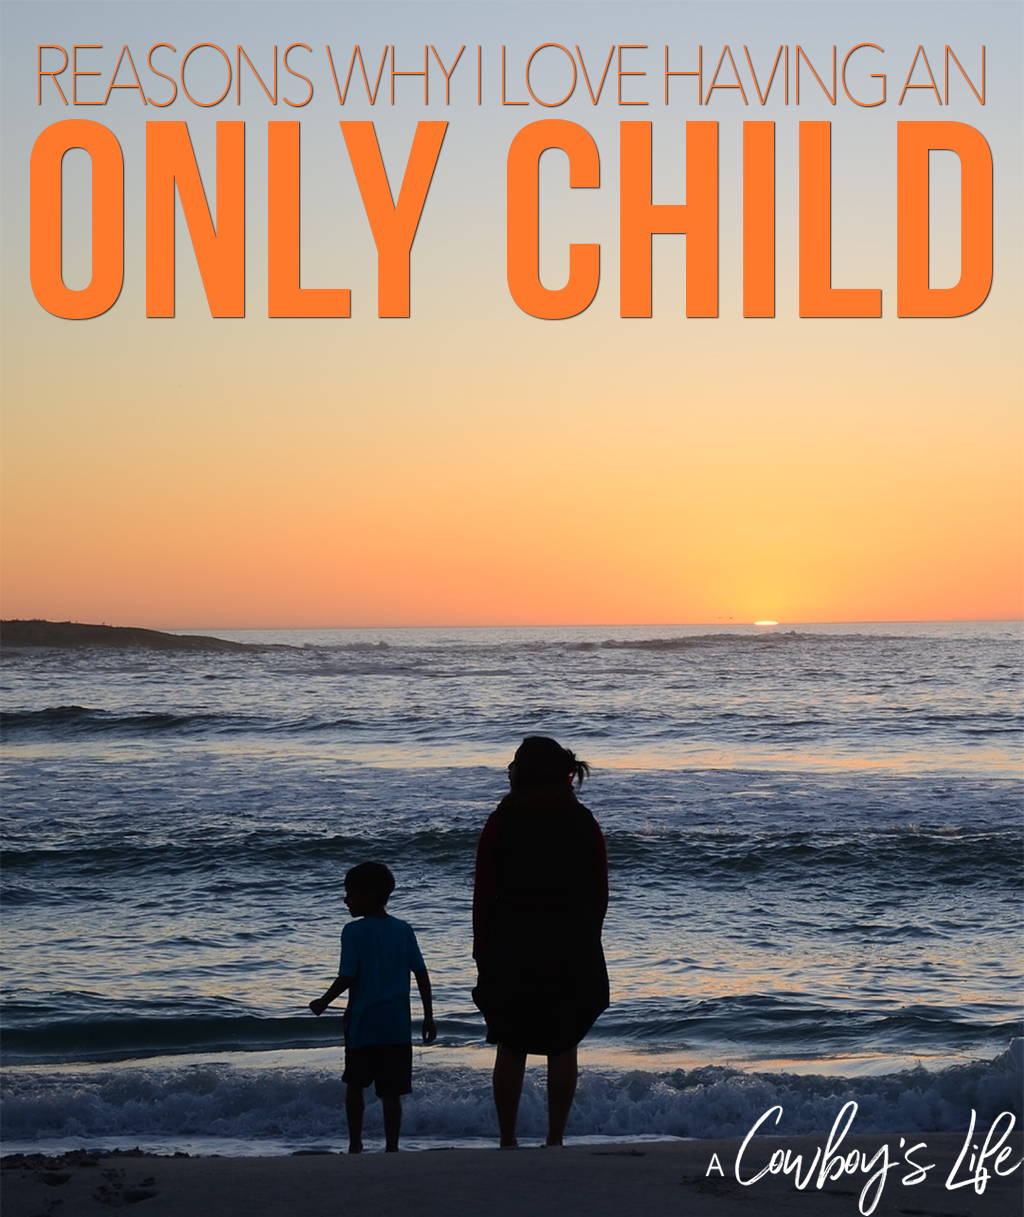 The reasons why I love having an only child #parenting #onlychild